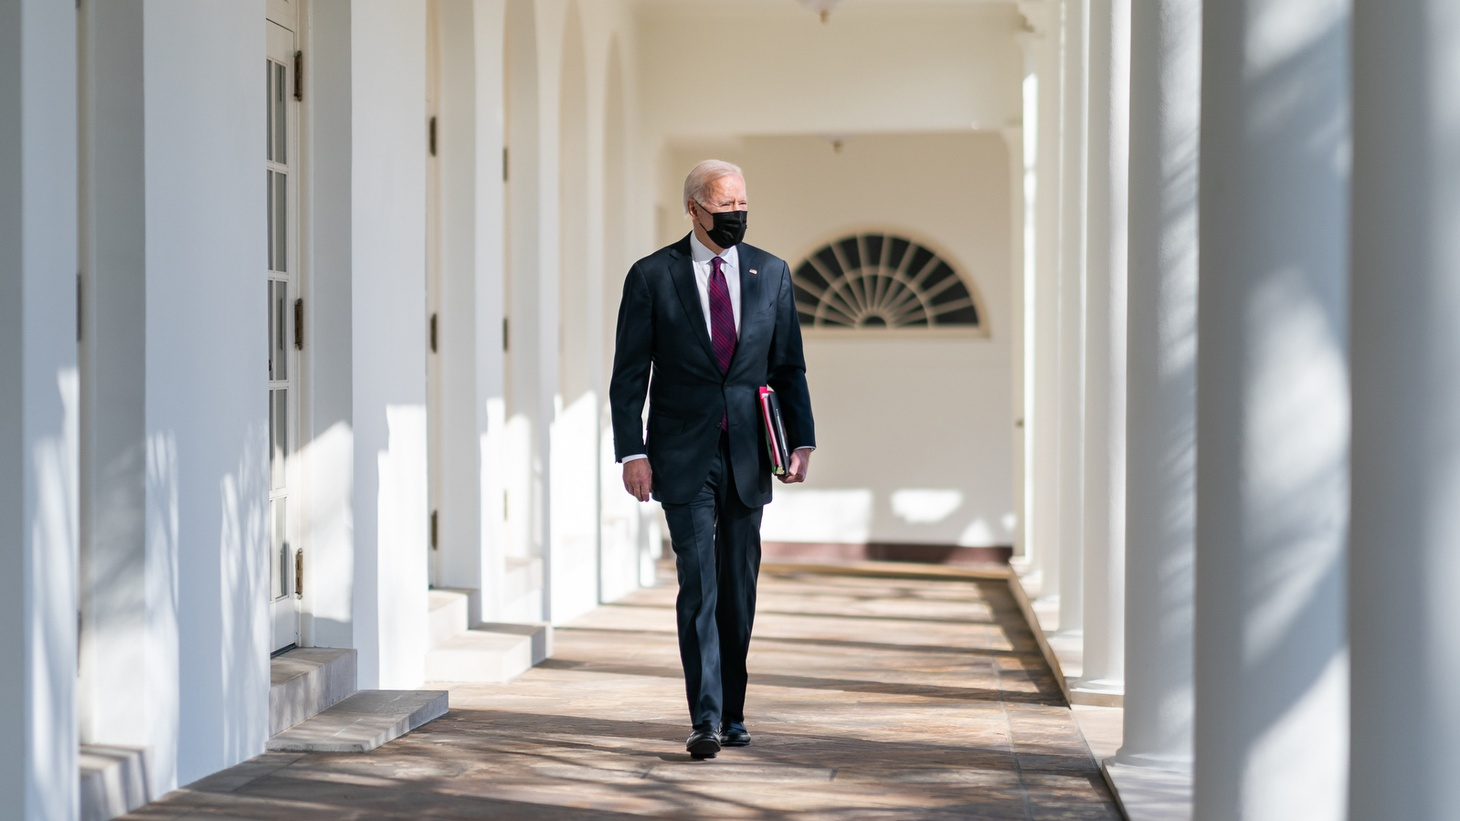 President Joe Biden walks along the Colonnade of the White House to the Oval Office.